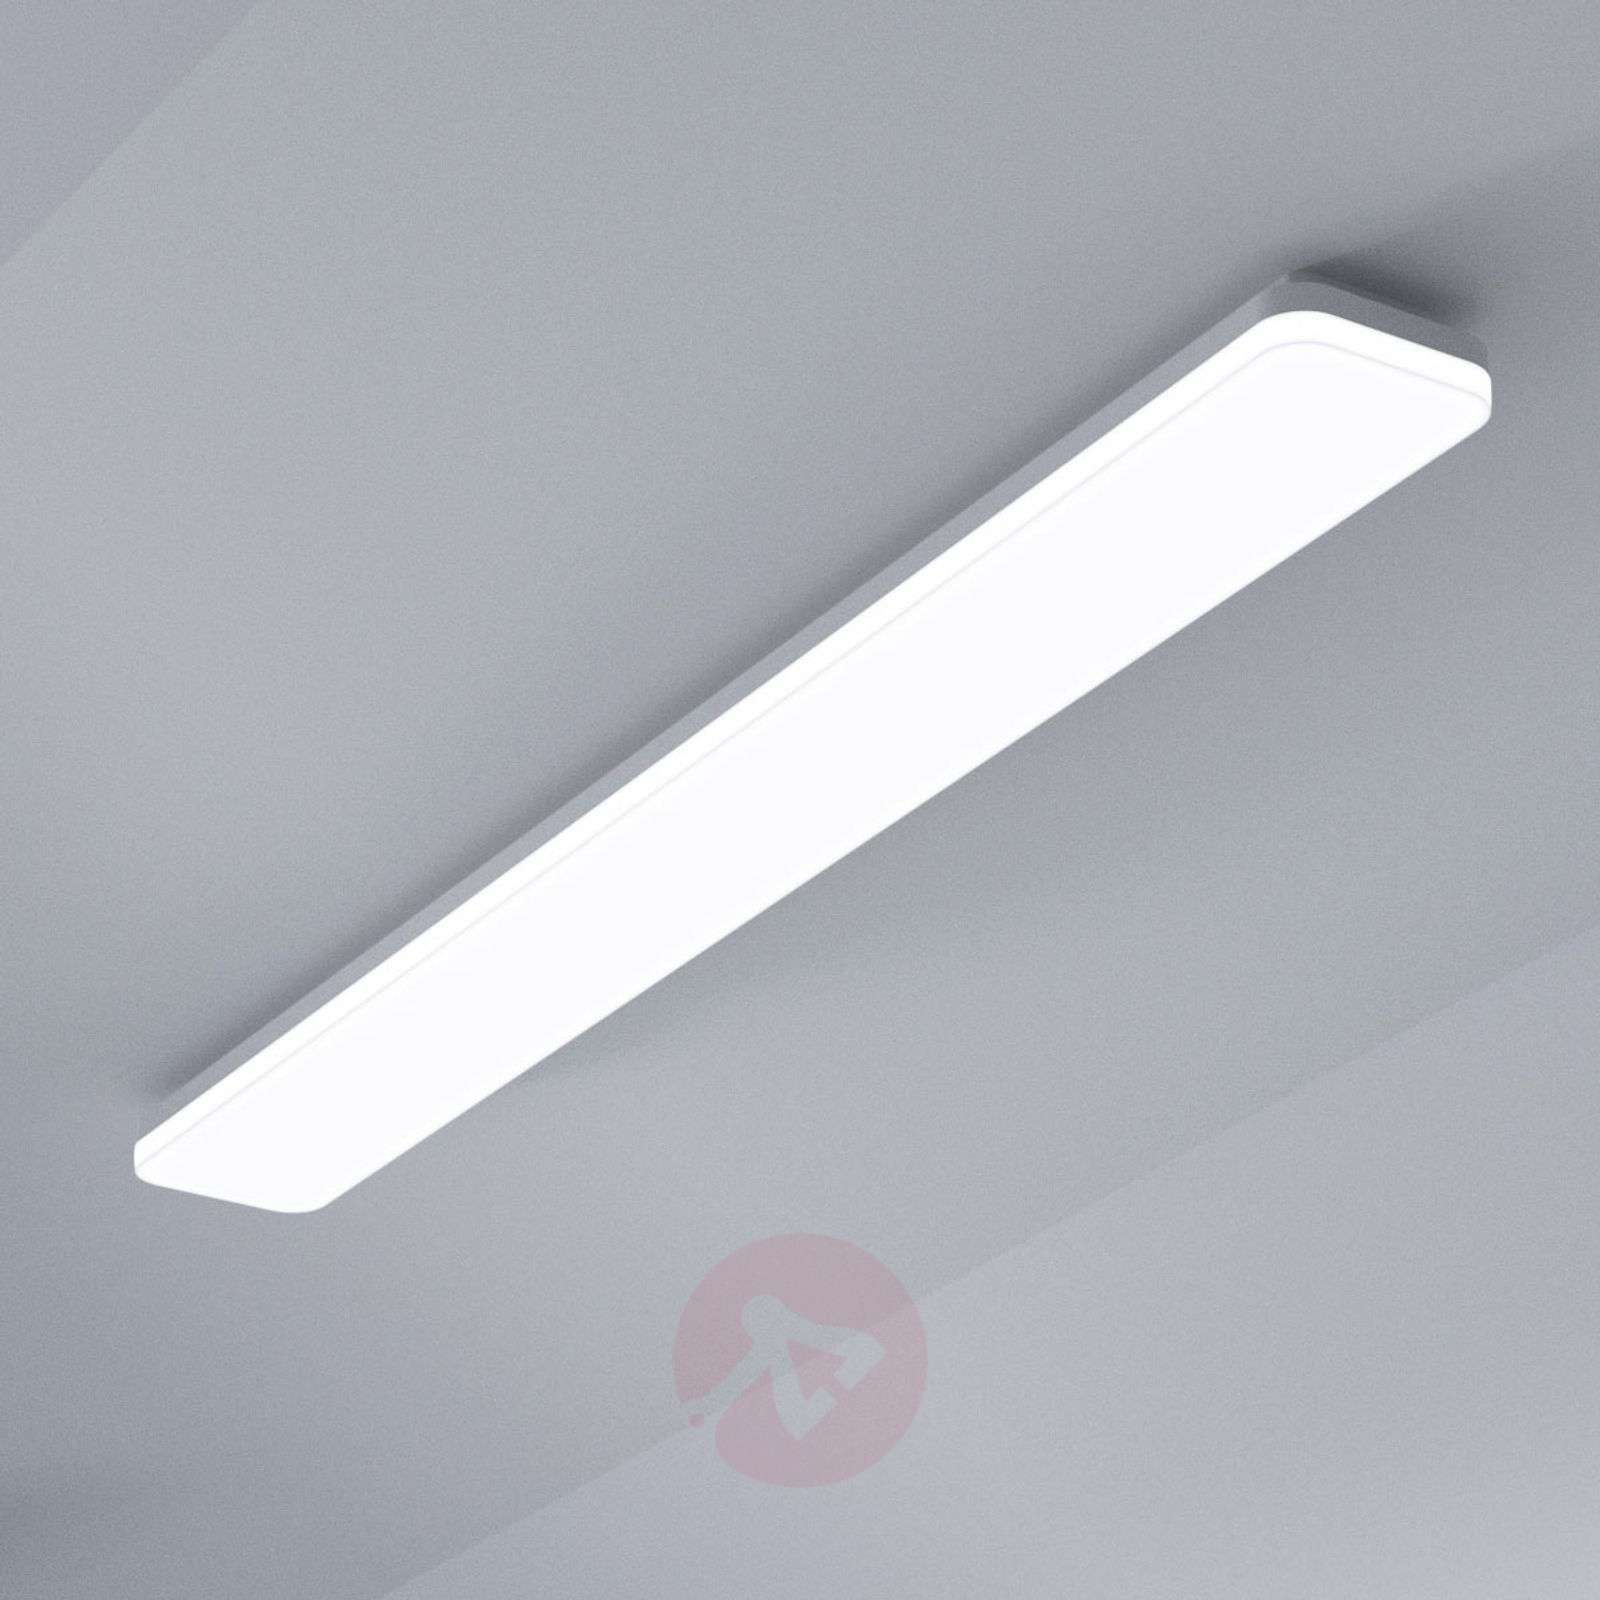 Sensor LED ceiling light Tamias, 4000K IP44 120 cm-9642008-04